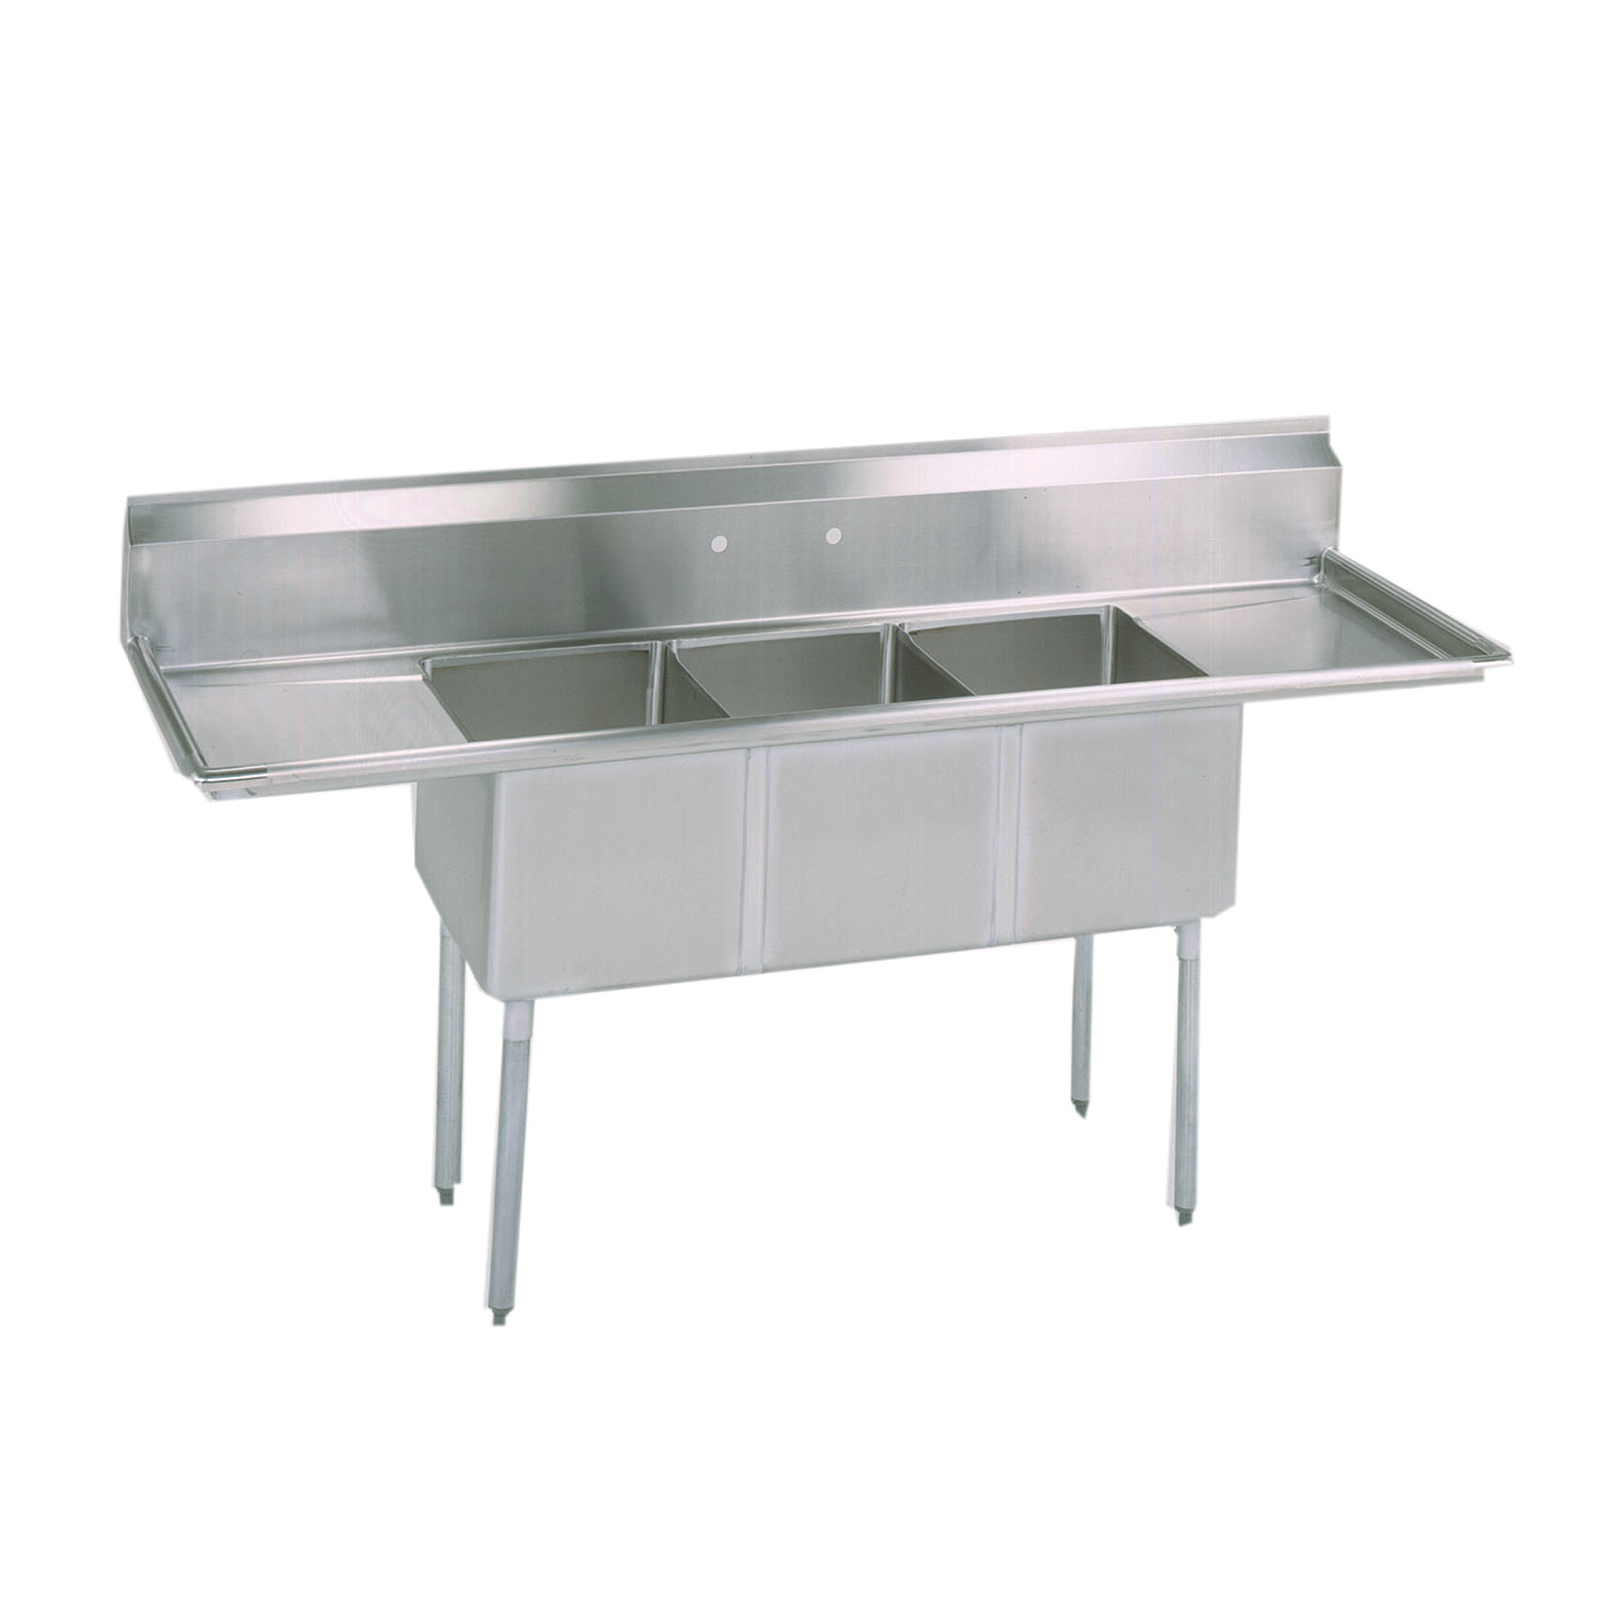 BK Resources BKS-3-1824-14-24T sink, (3) three compartment